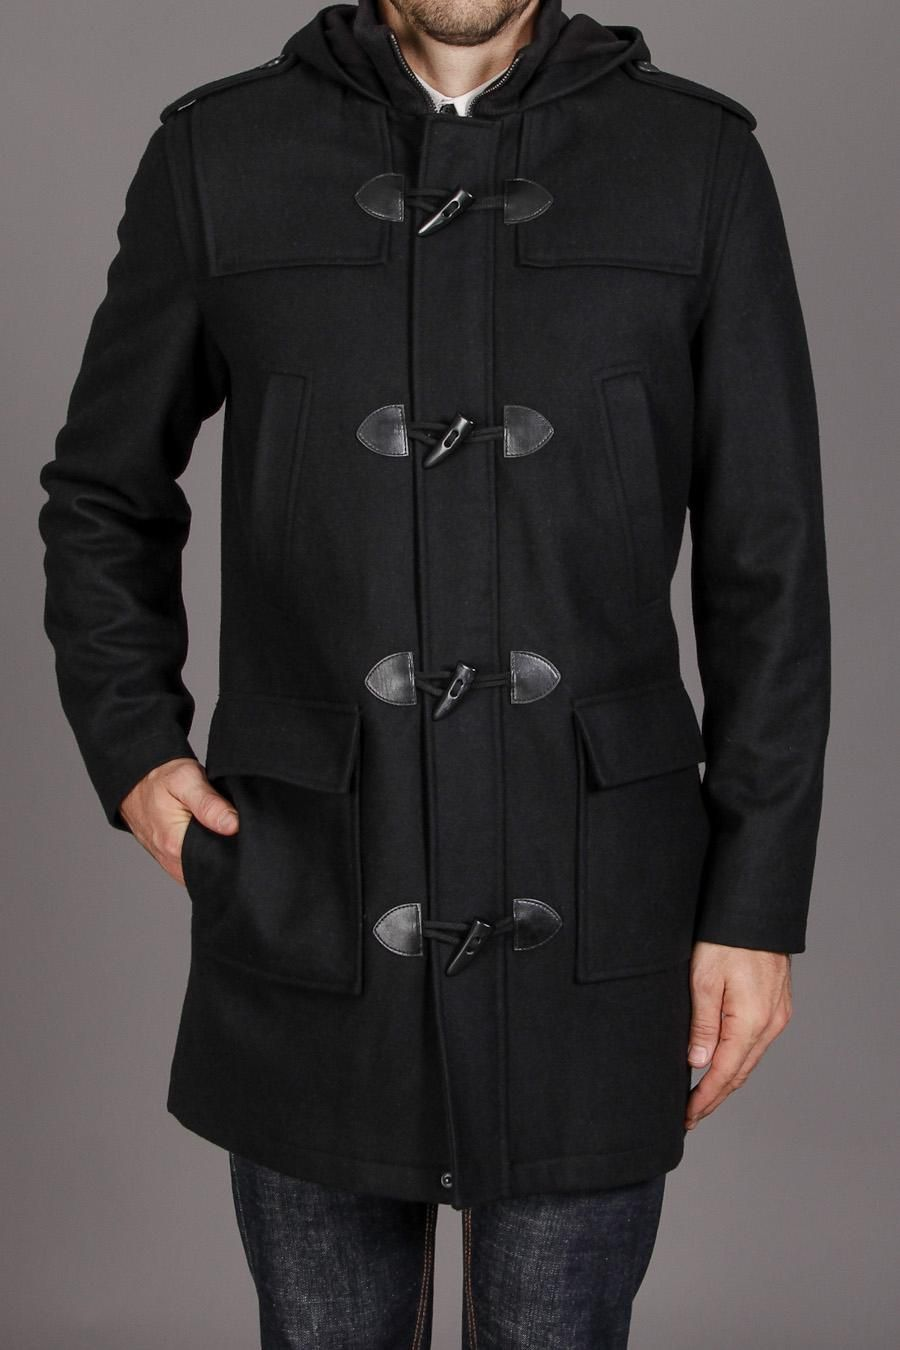 4 Pocket Toggle Jacket With Zip Front and Hood / by Black Rivet.